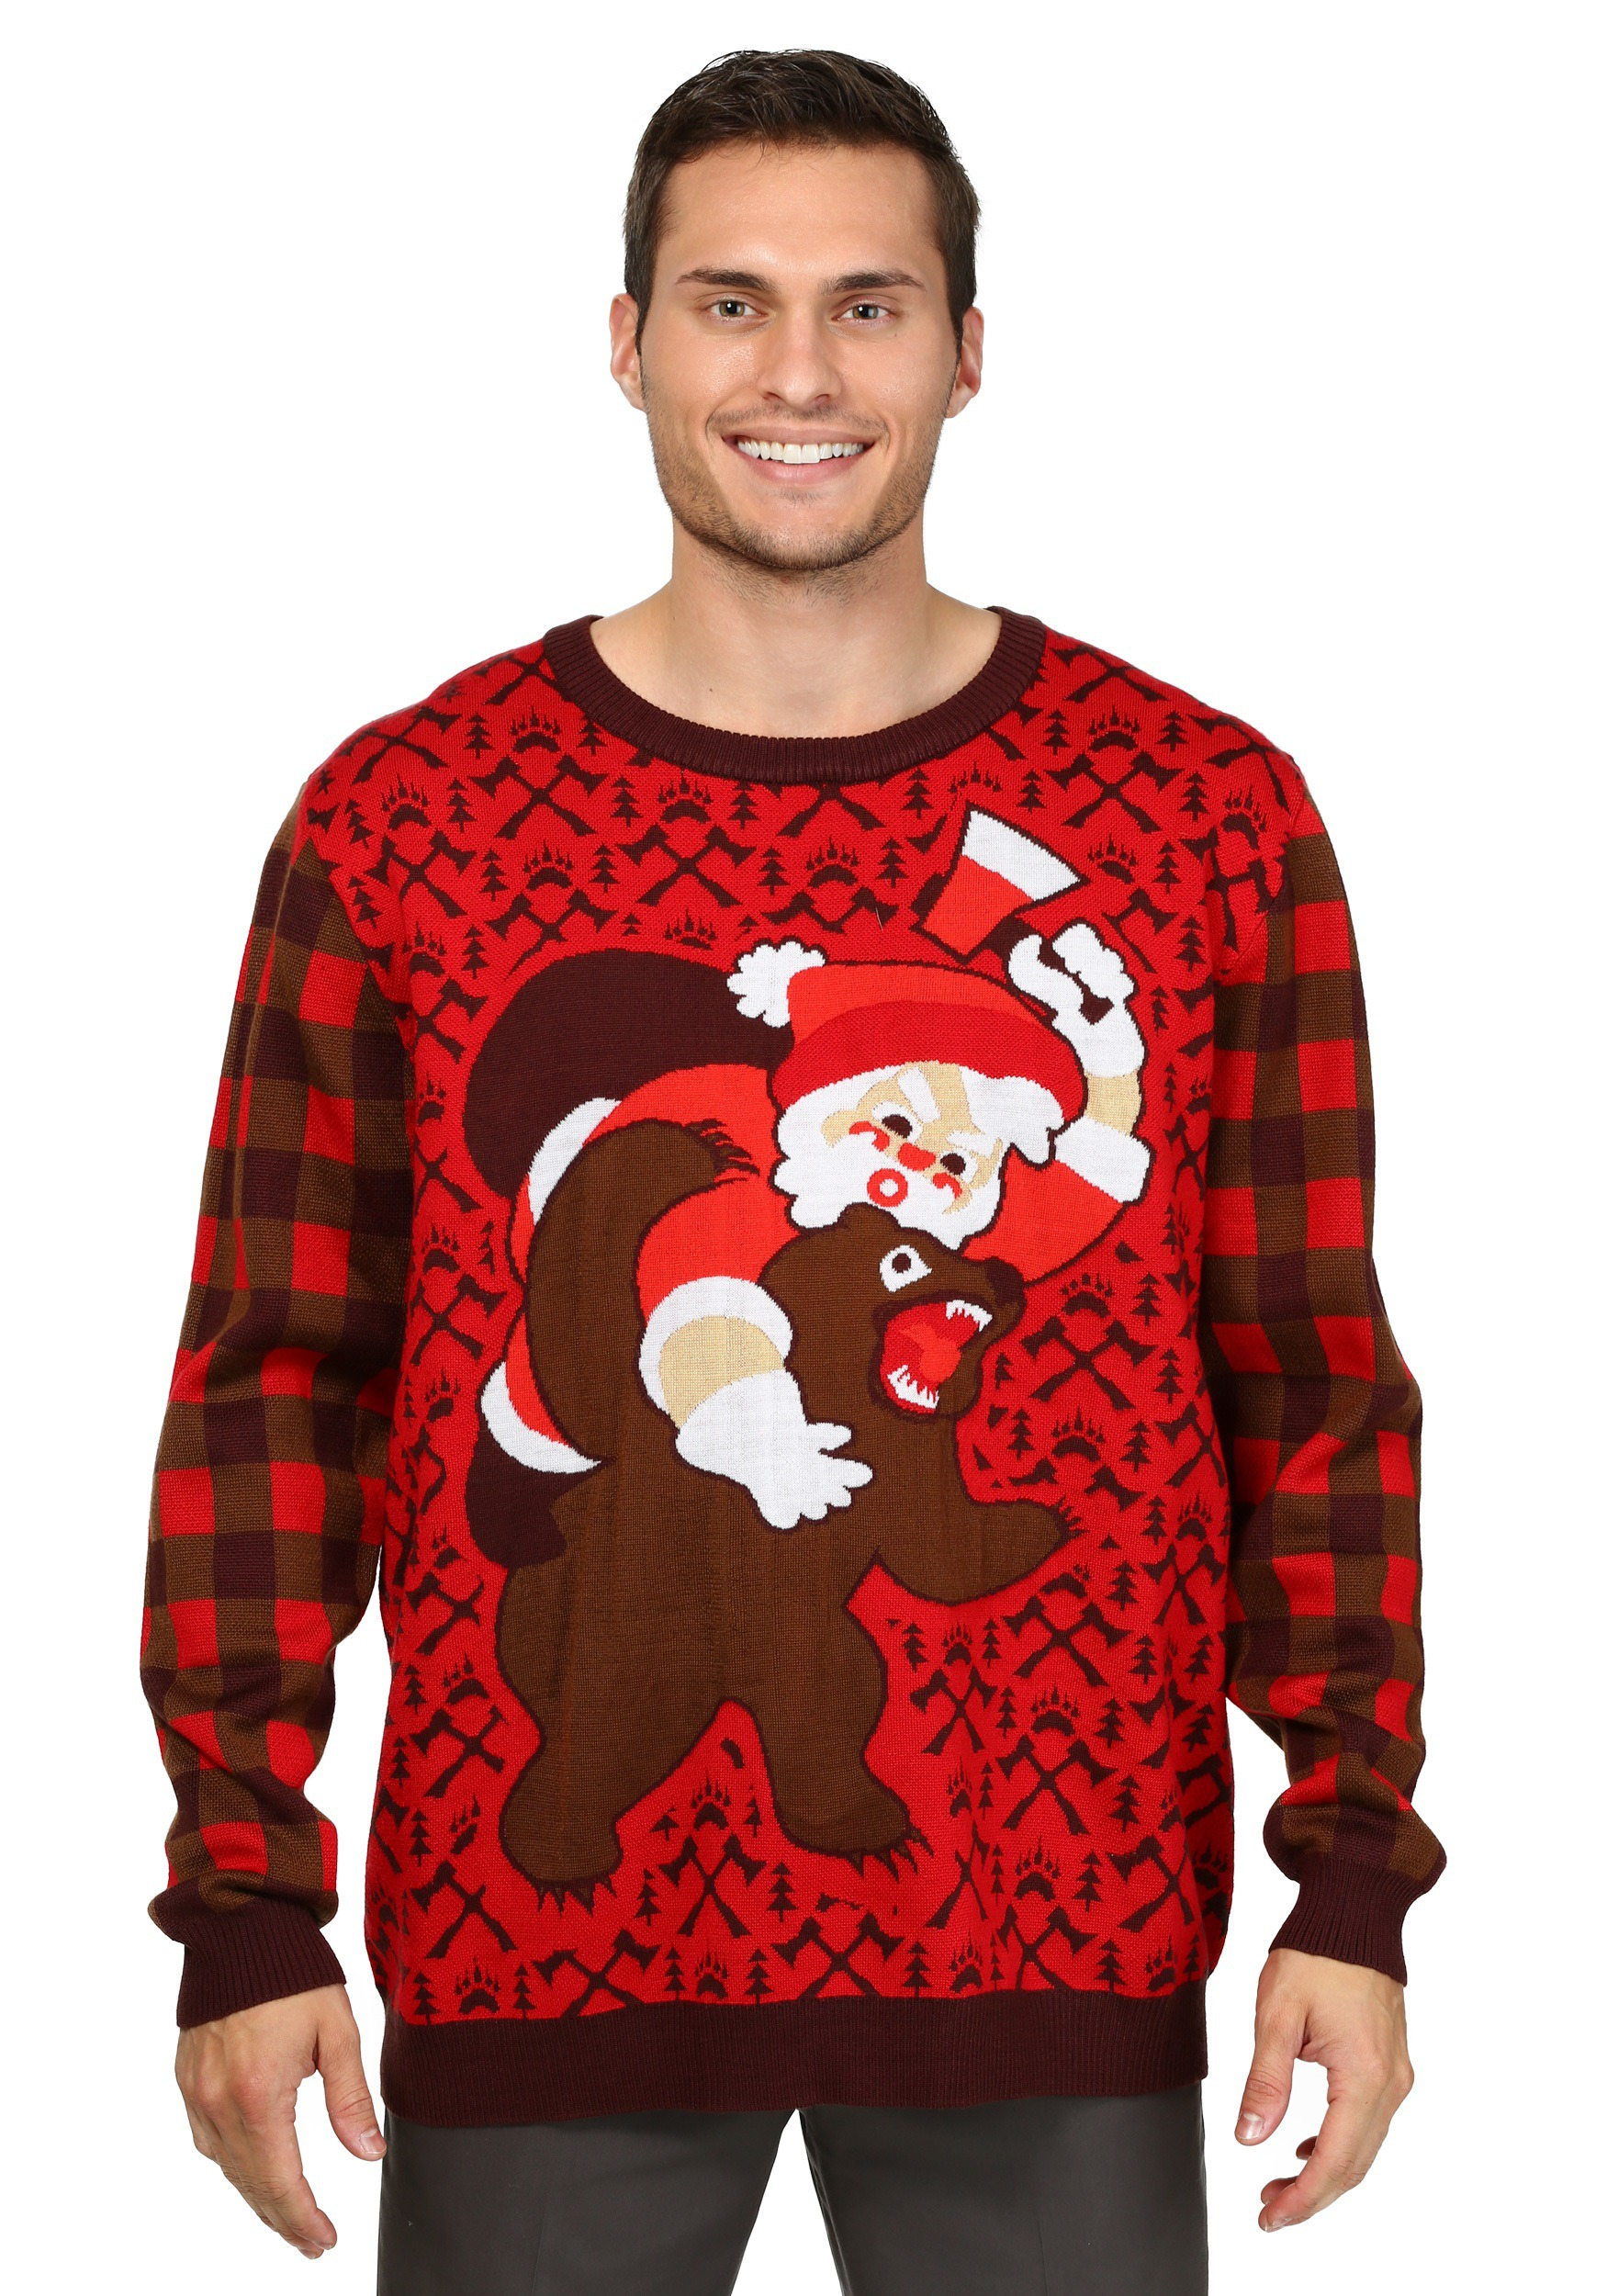 Bear Christmas Sweater